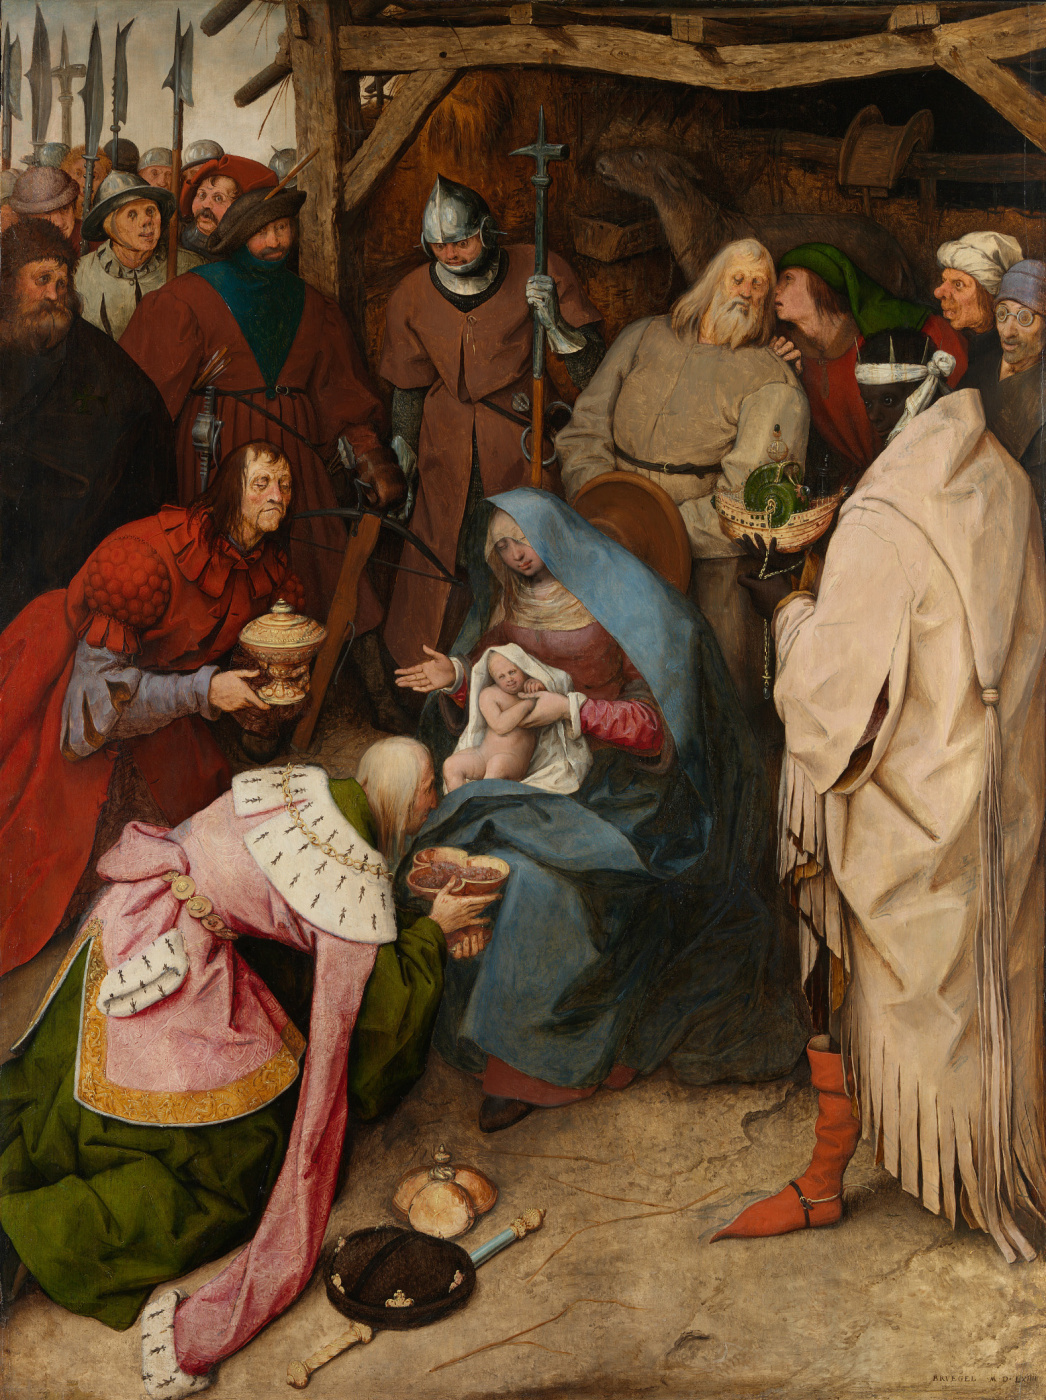 Pieter Bruegel The Elder. Adoration of the Magi